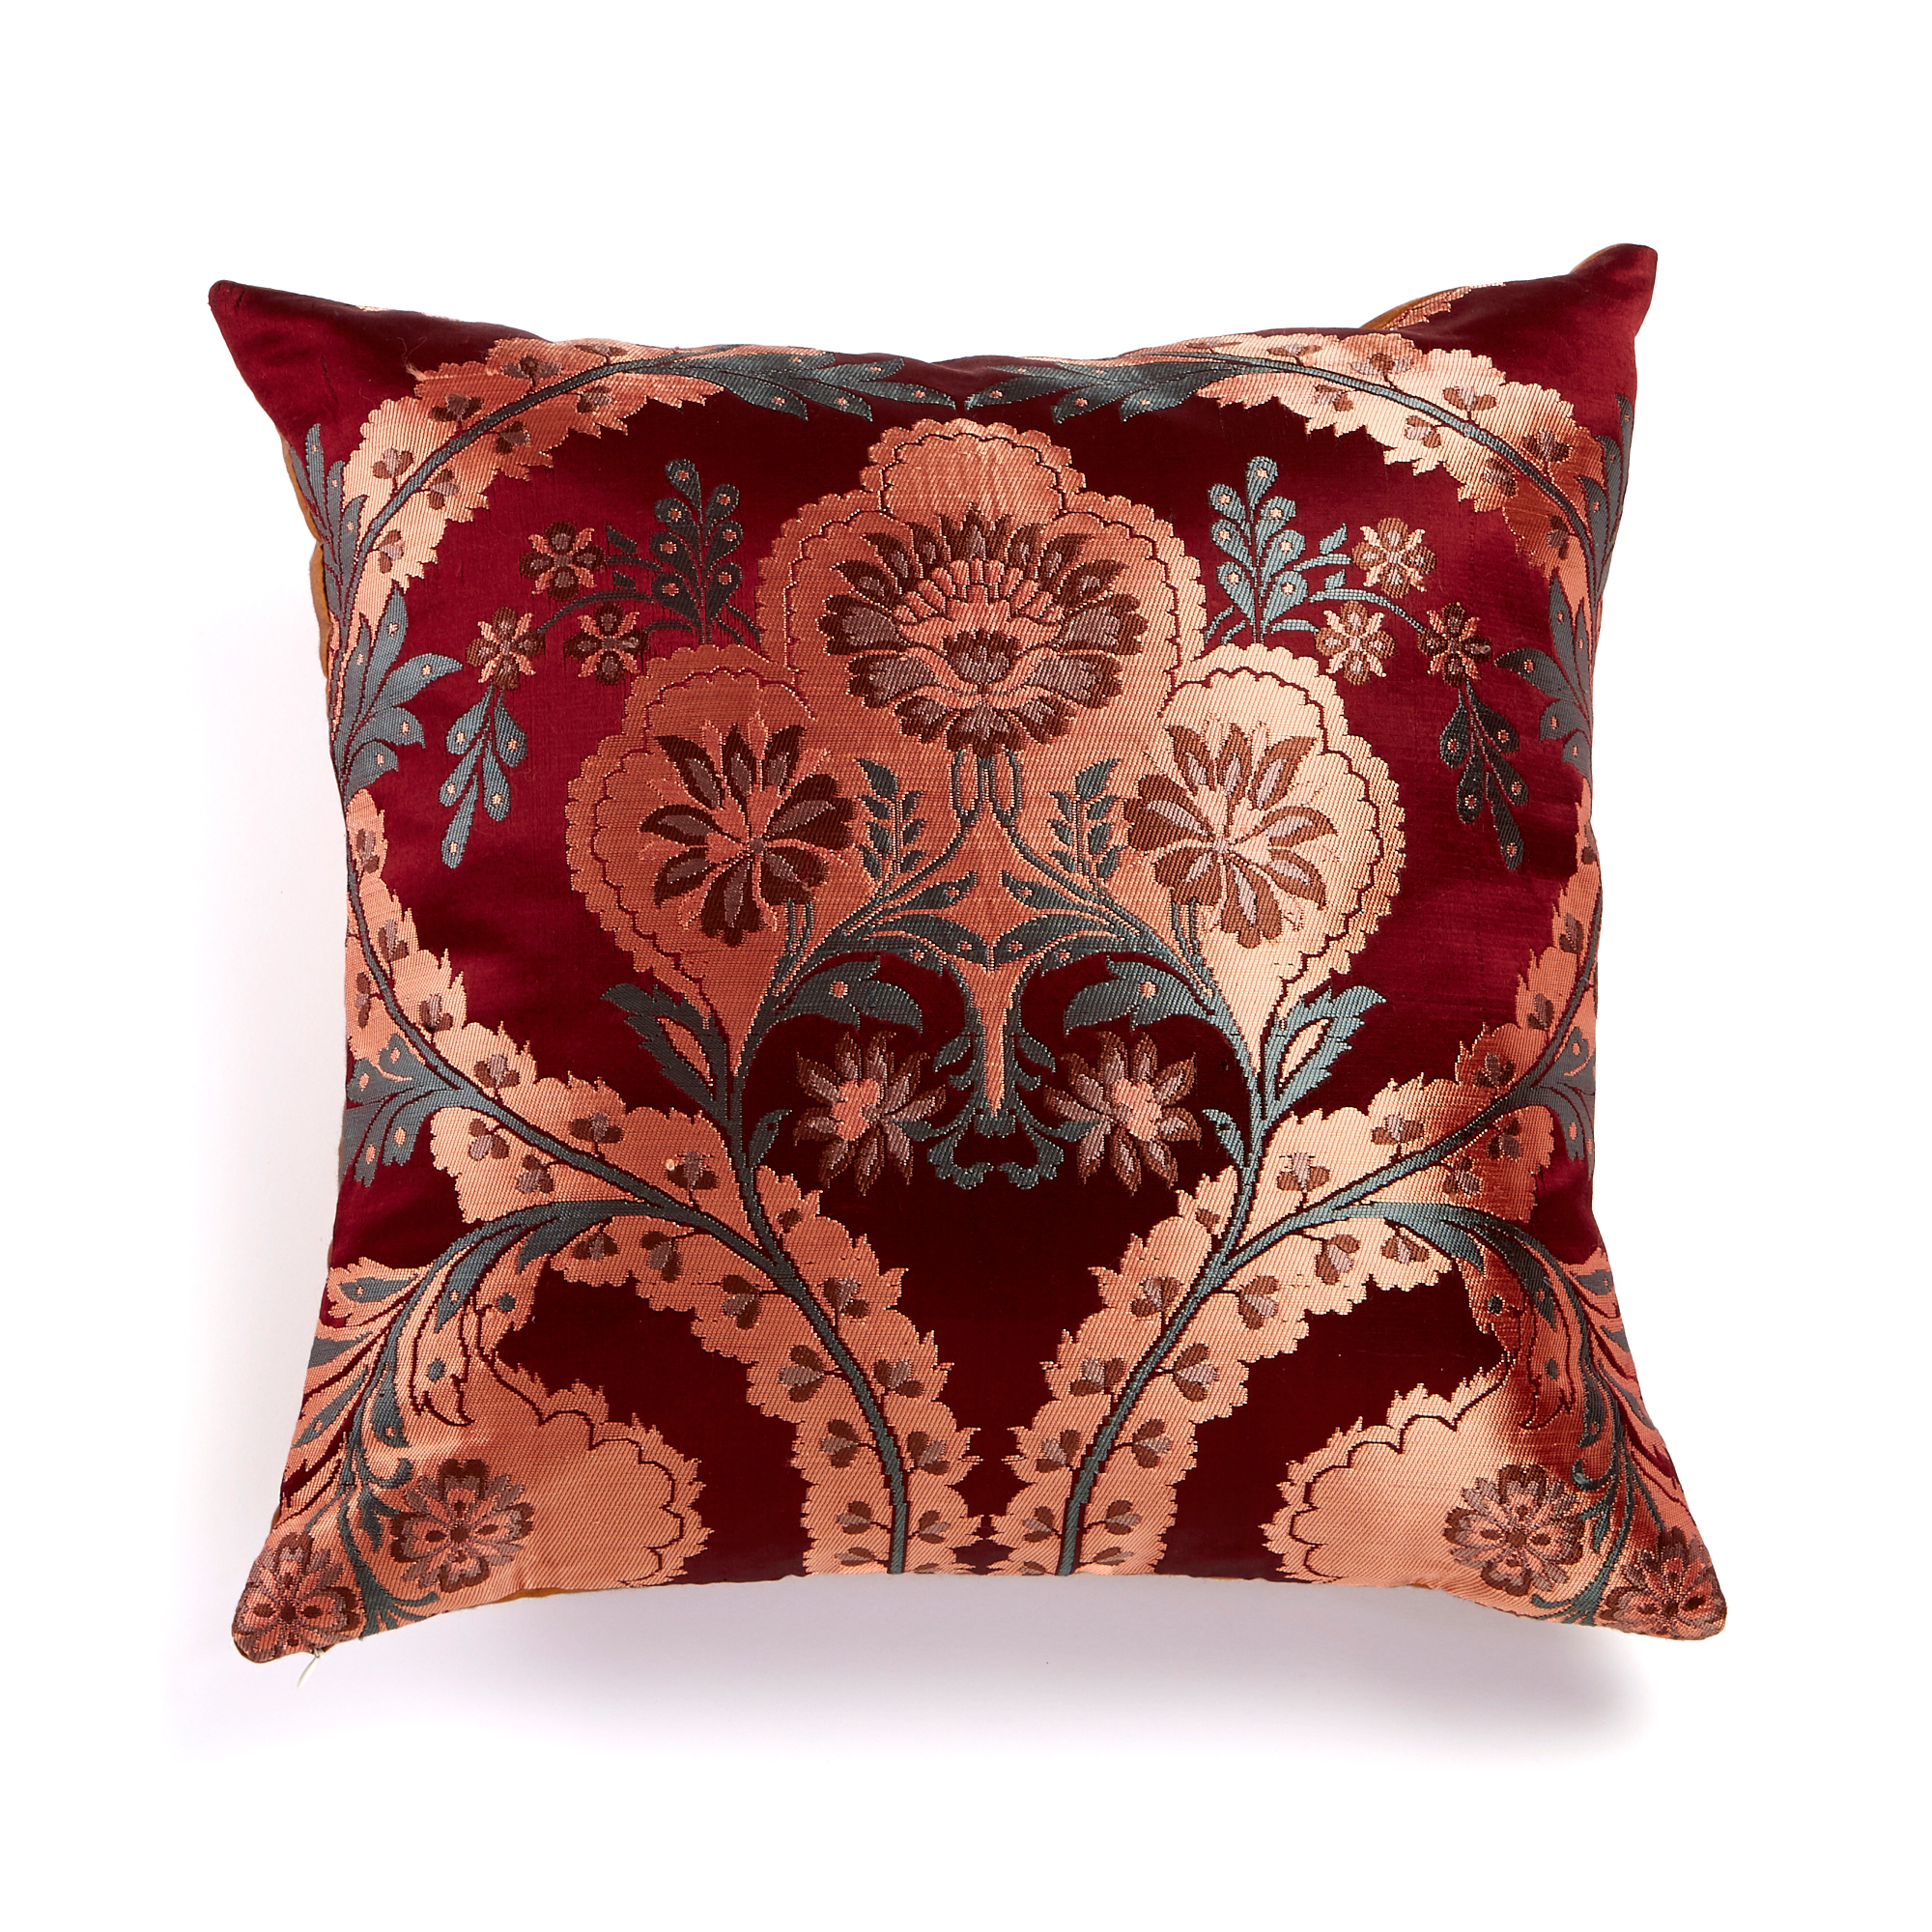 Floral Silk Brocade Pillow, Maroon & Copper